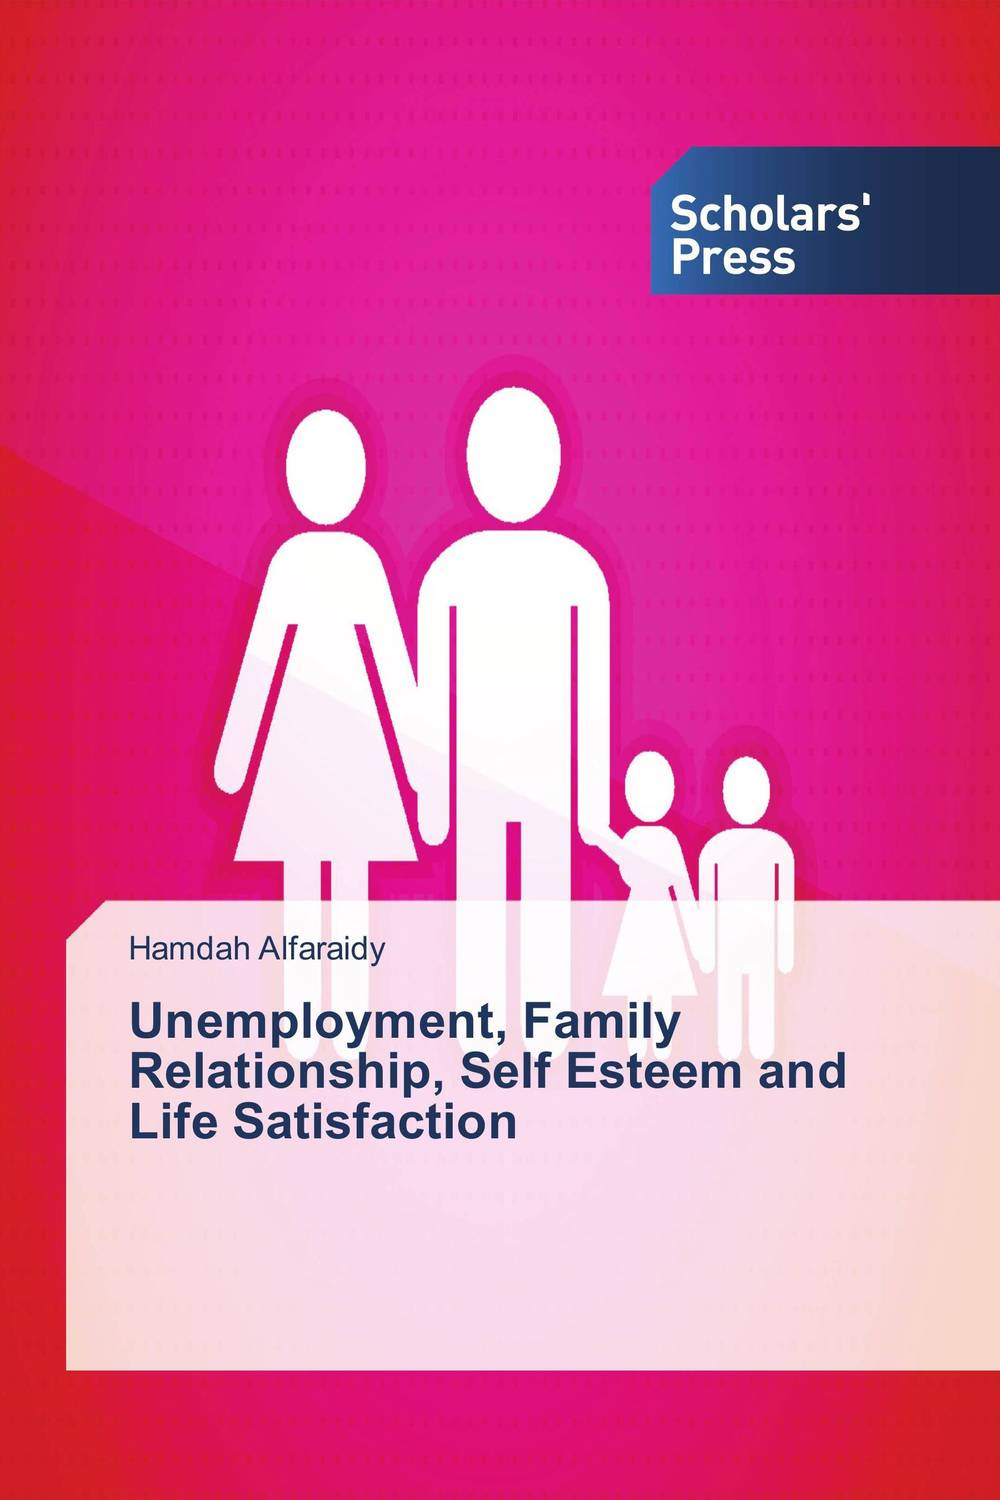 Unemployment, Family Relationship, Self Esteem and Life Satisfaction janet norton on the other side the fall